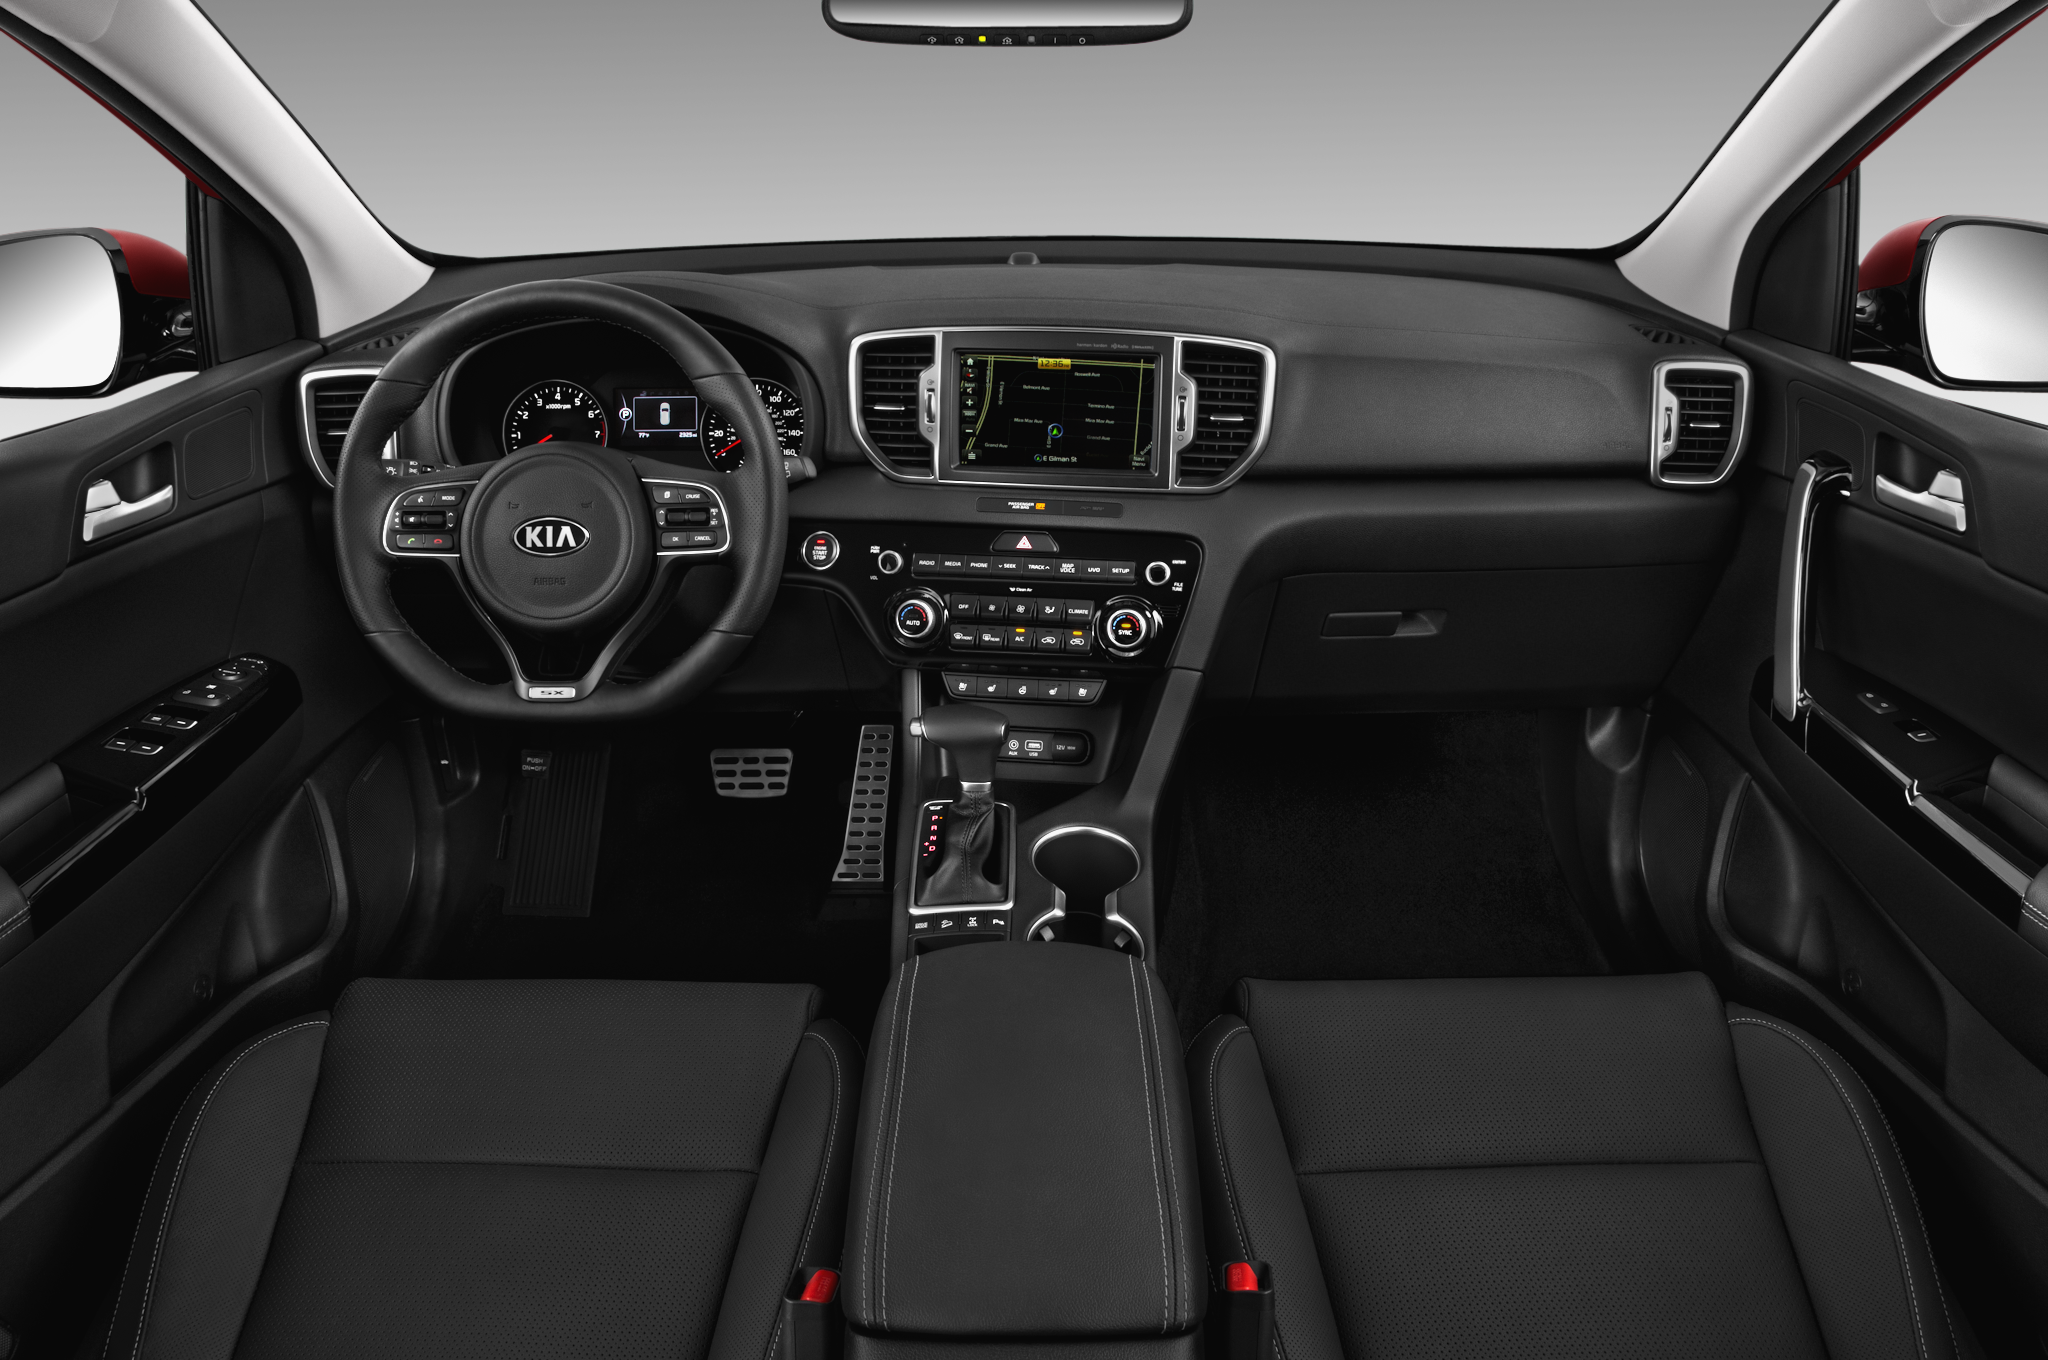 images ratings msrp reviews with kia sportage amazing news